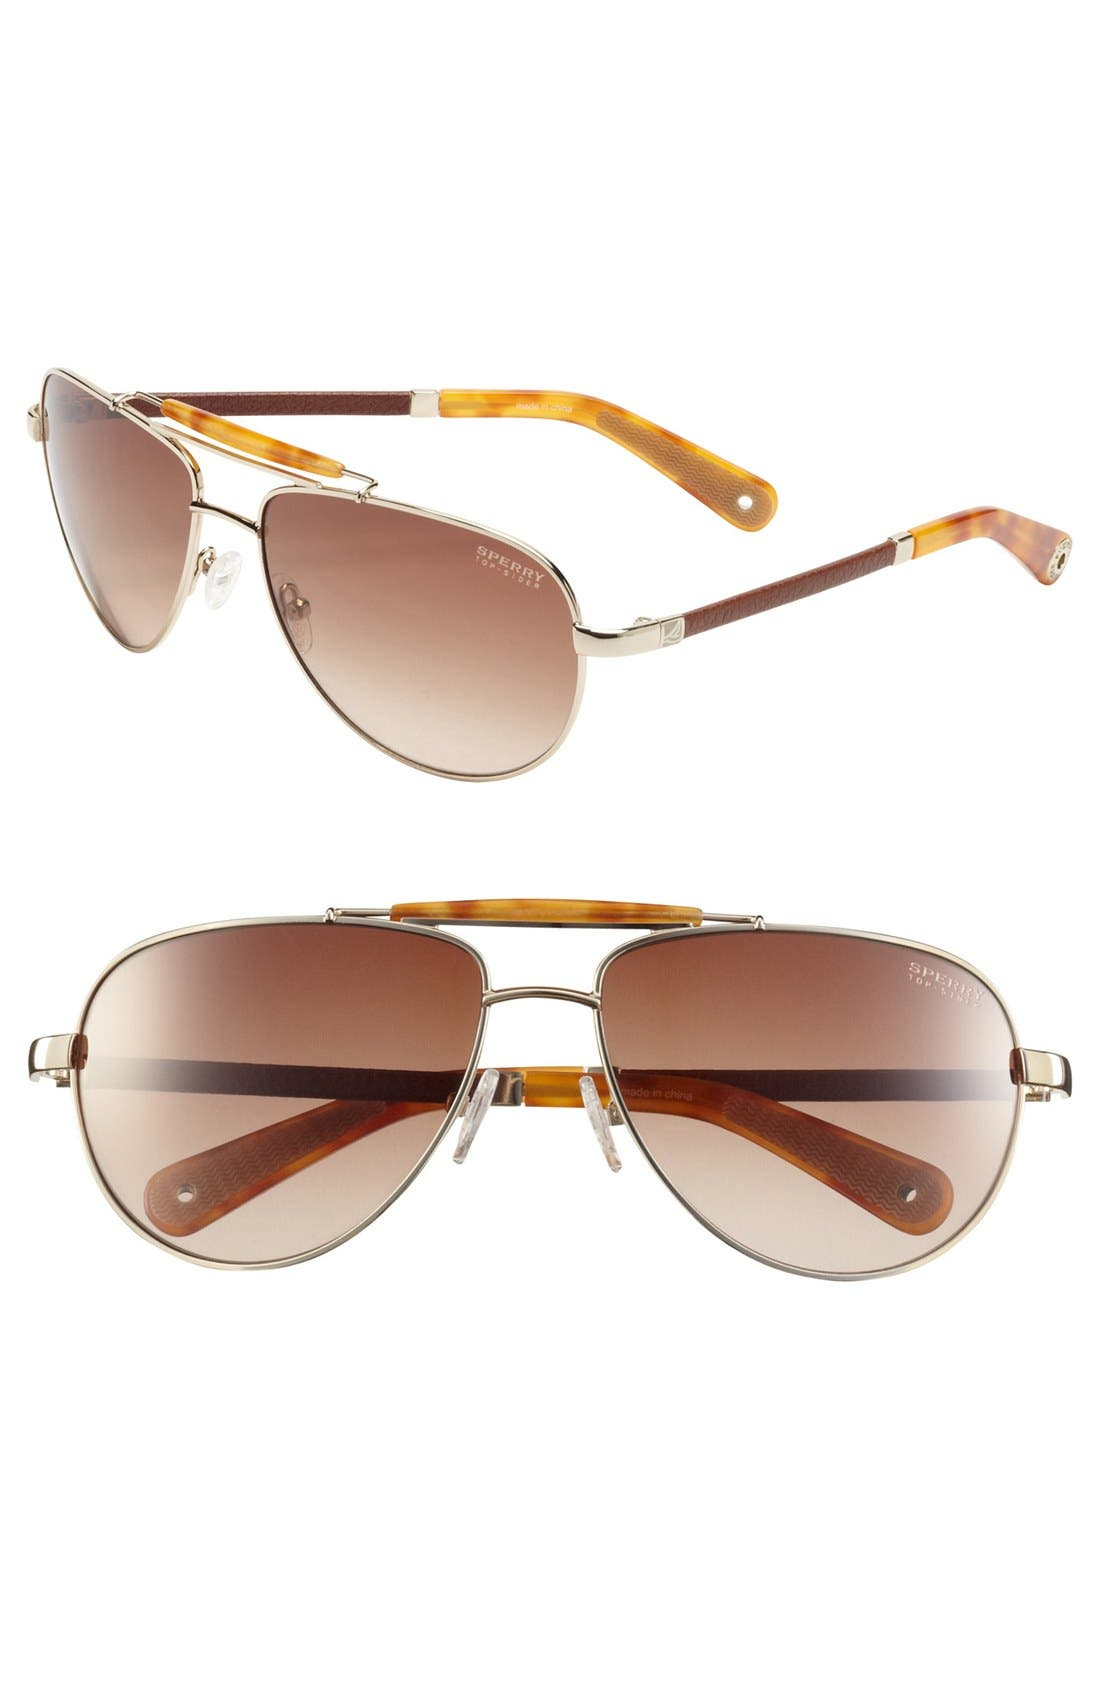 Main Image - Sperry Top-Sider® 'Vineyard Haven' 60mm Aviator Sunglasses (Online Only)